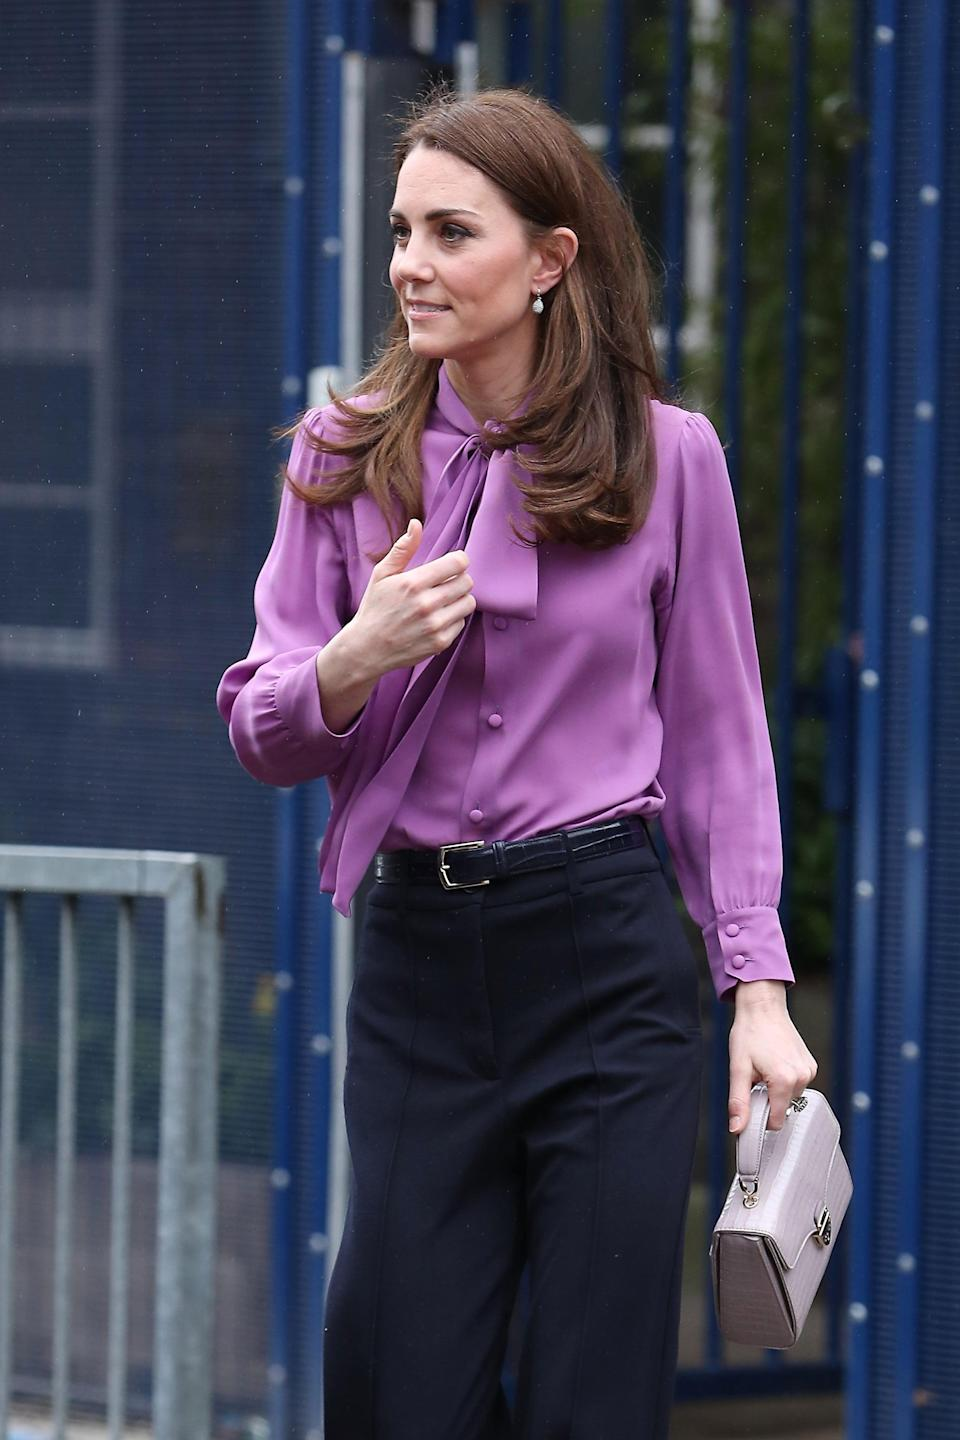 Kate Middleton Wearing the Gucci Blouse in March 2019